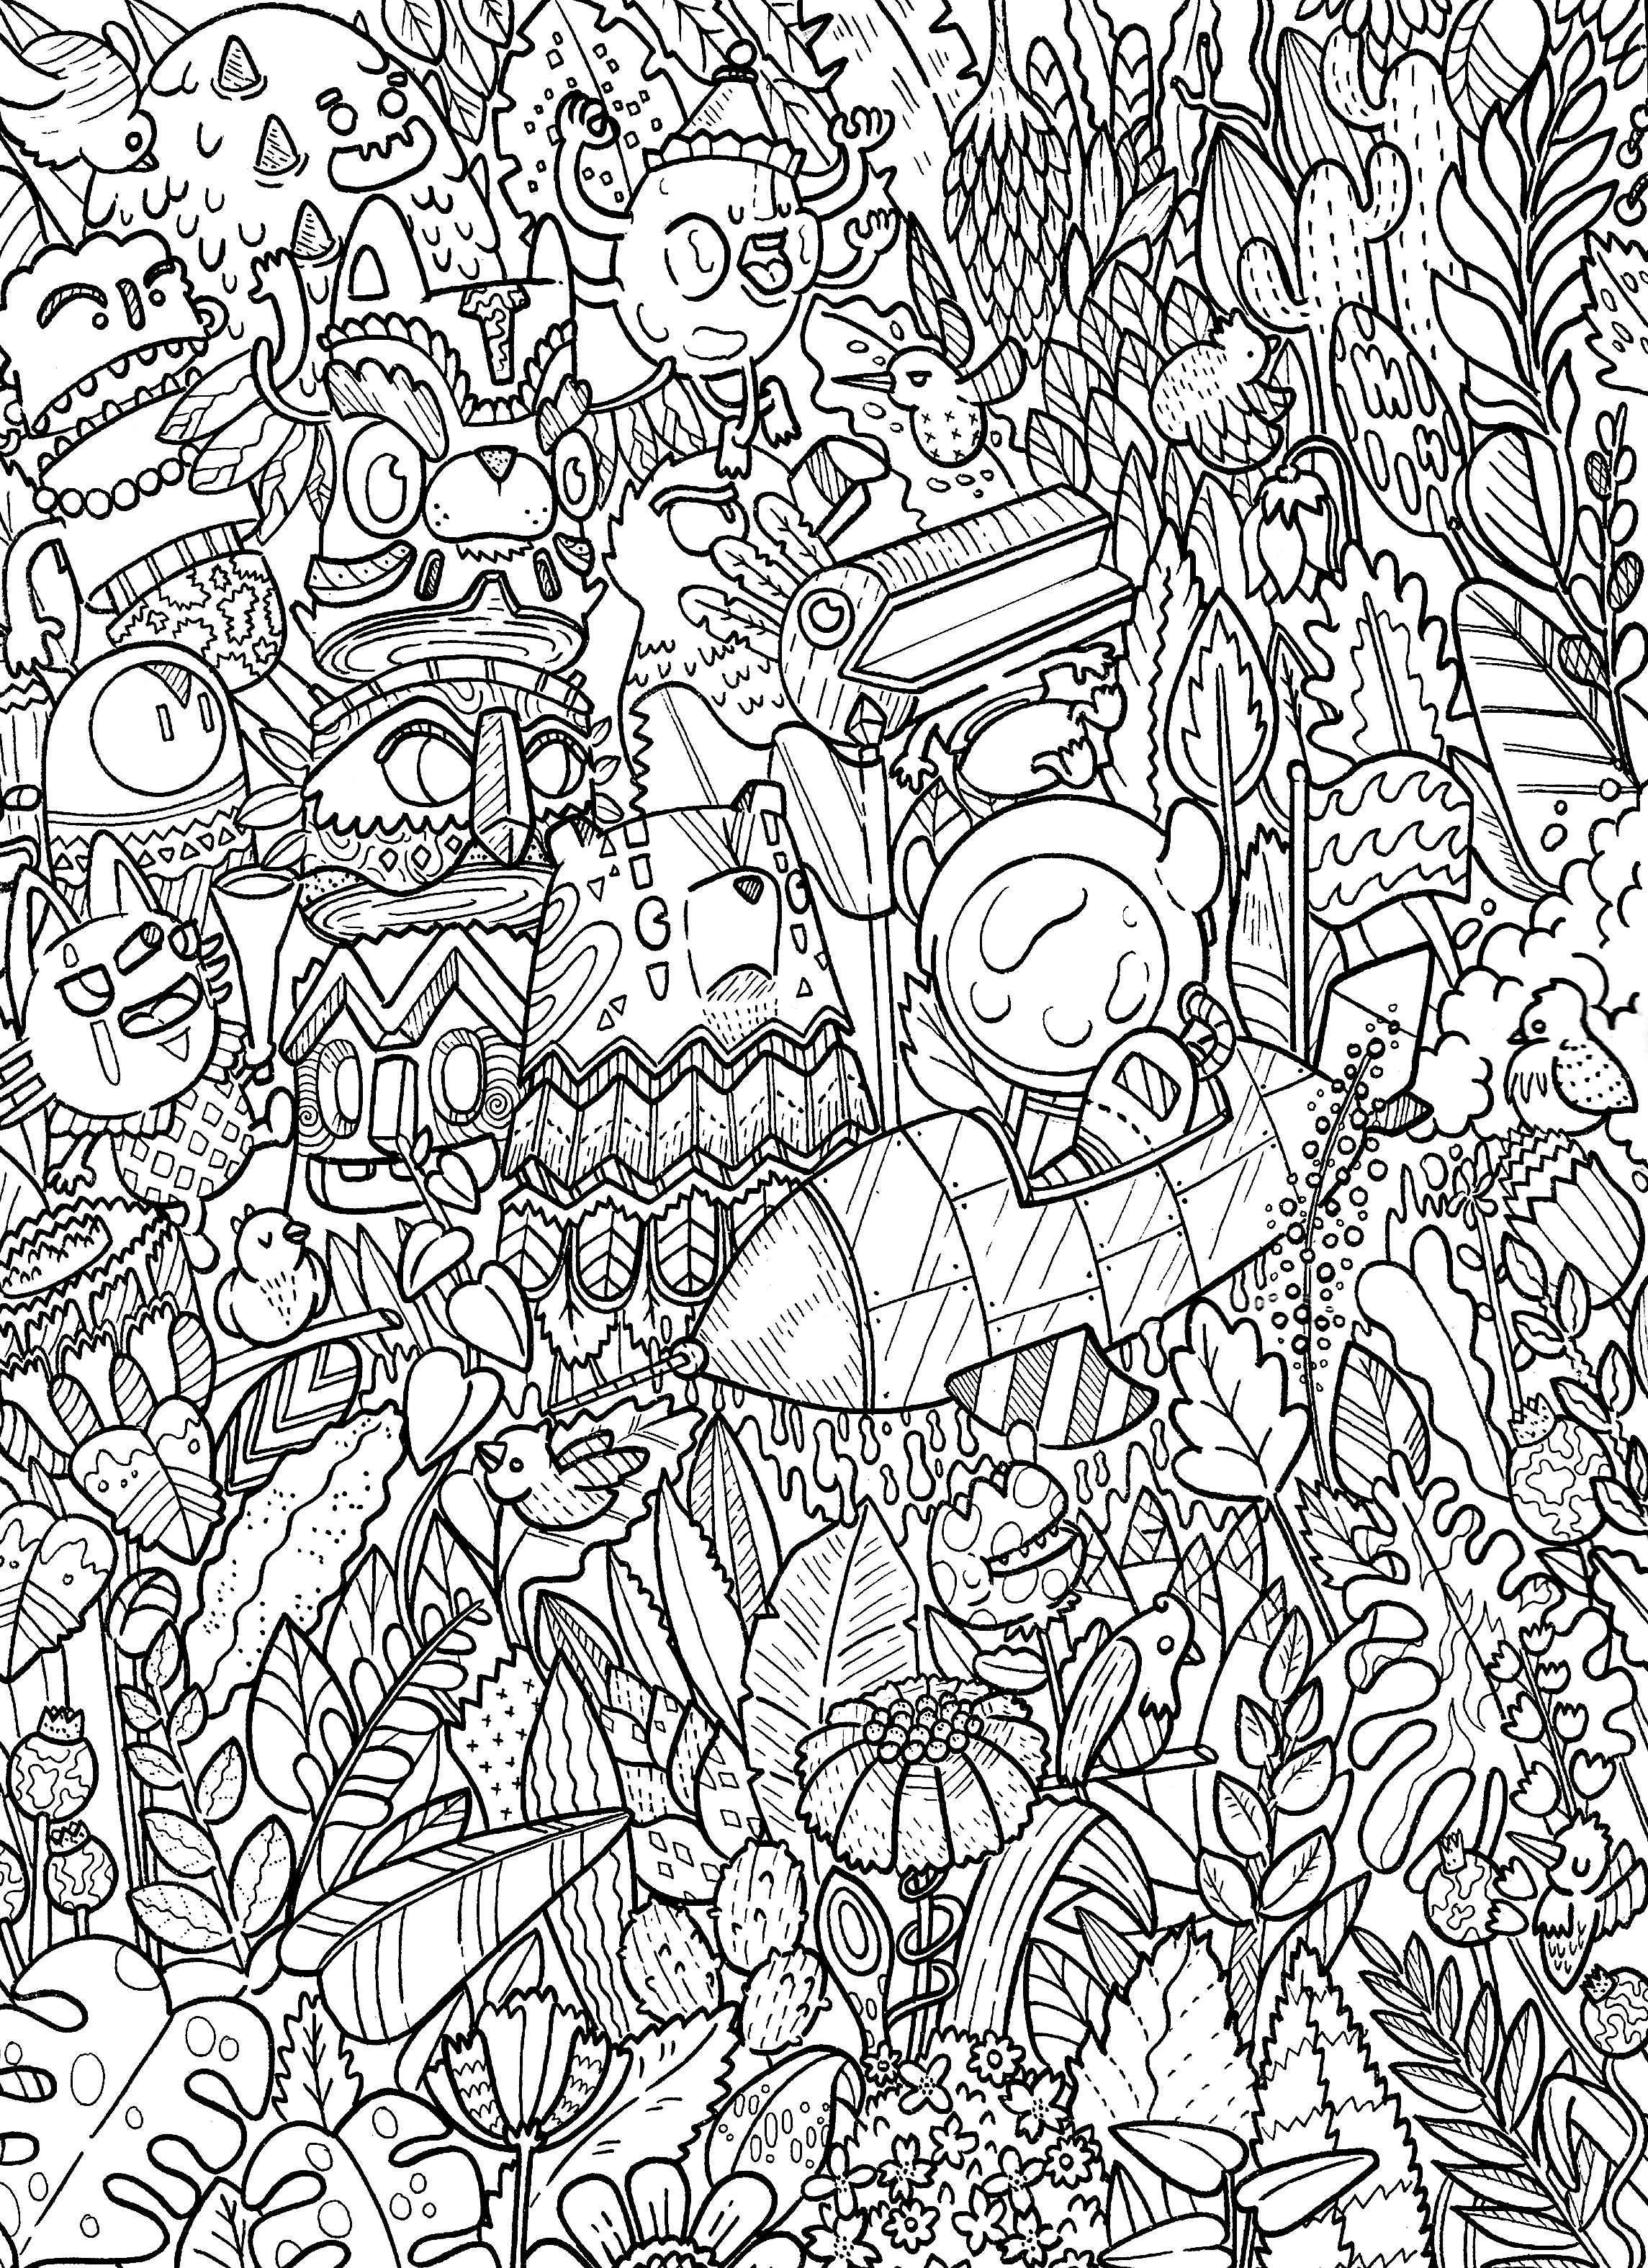 Doodle coloring book monster coloring pages adult coloring pages coloring sheets coloring stuff